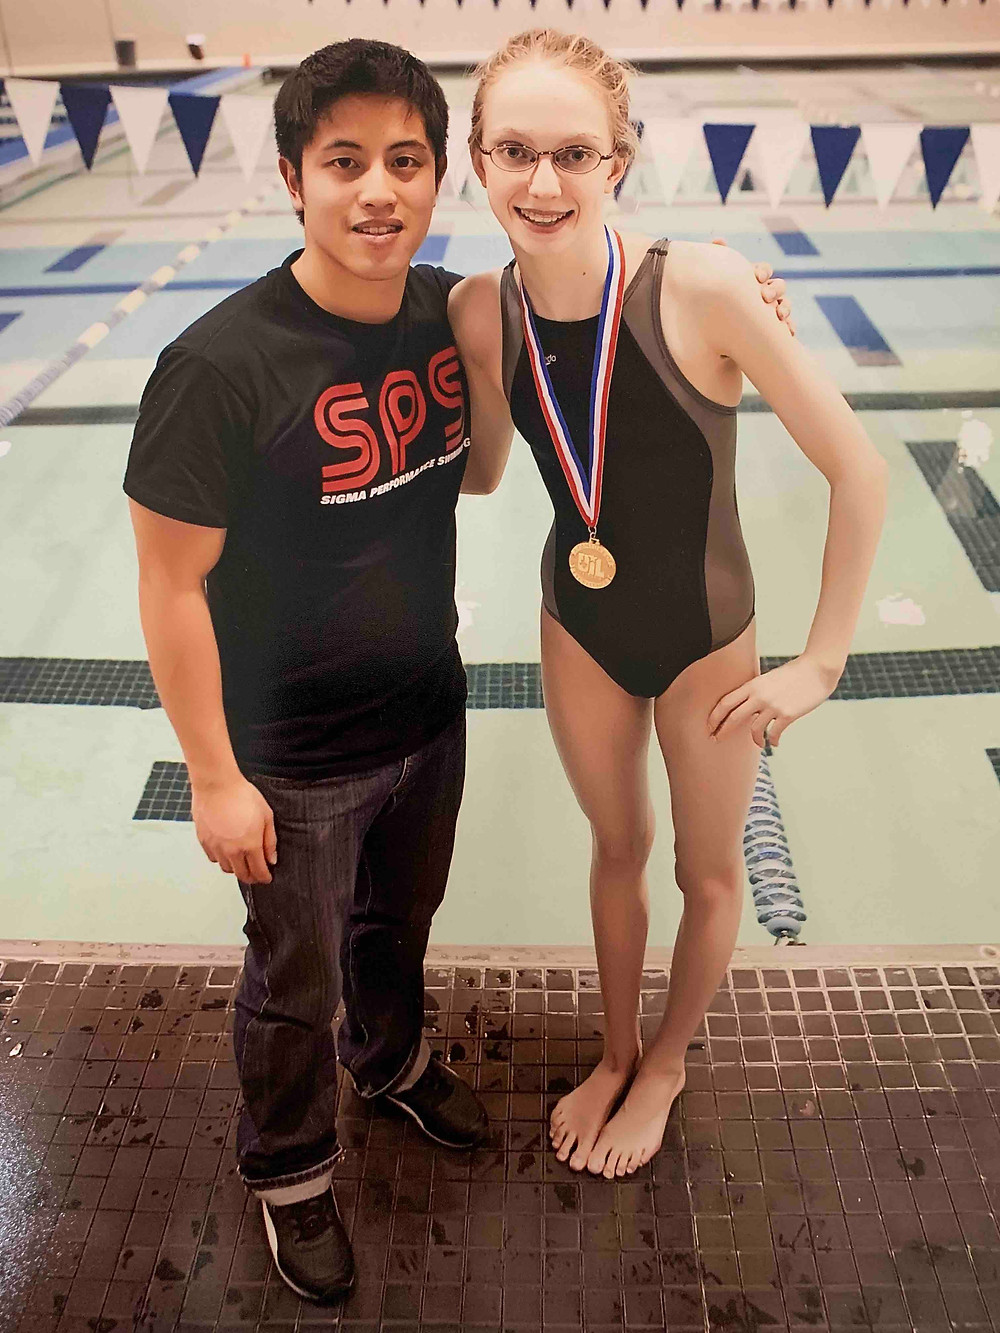 February 12, 2010: The day Kira won Regionals, qualified for State, and finally achieved her Sectionals cut in the 100 yard breaststroke in 1:08.79 after 6 months of little to no improvement.